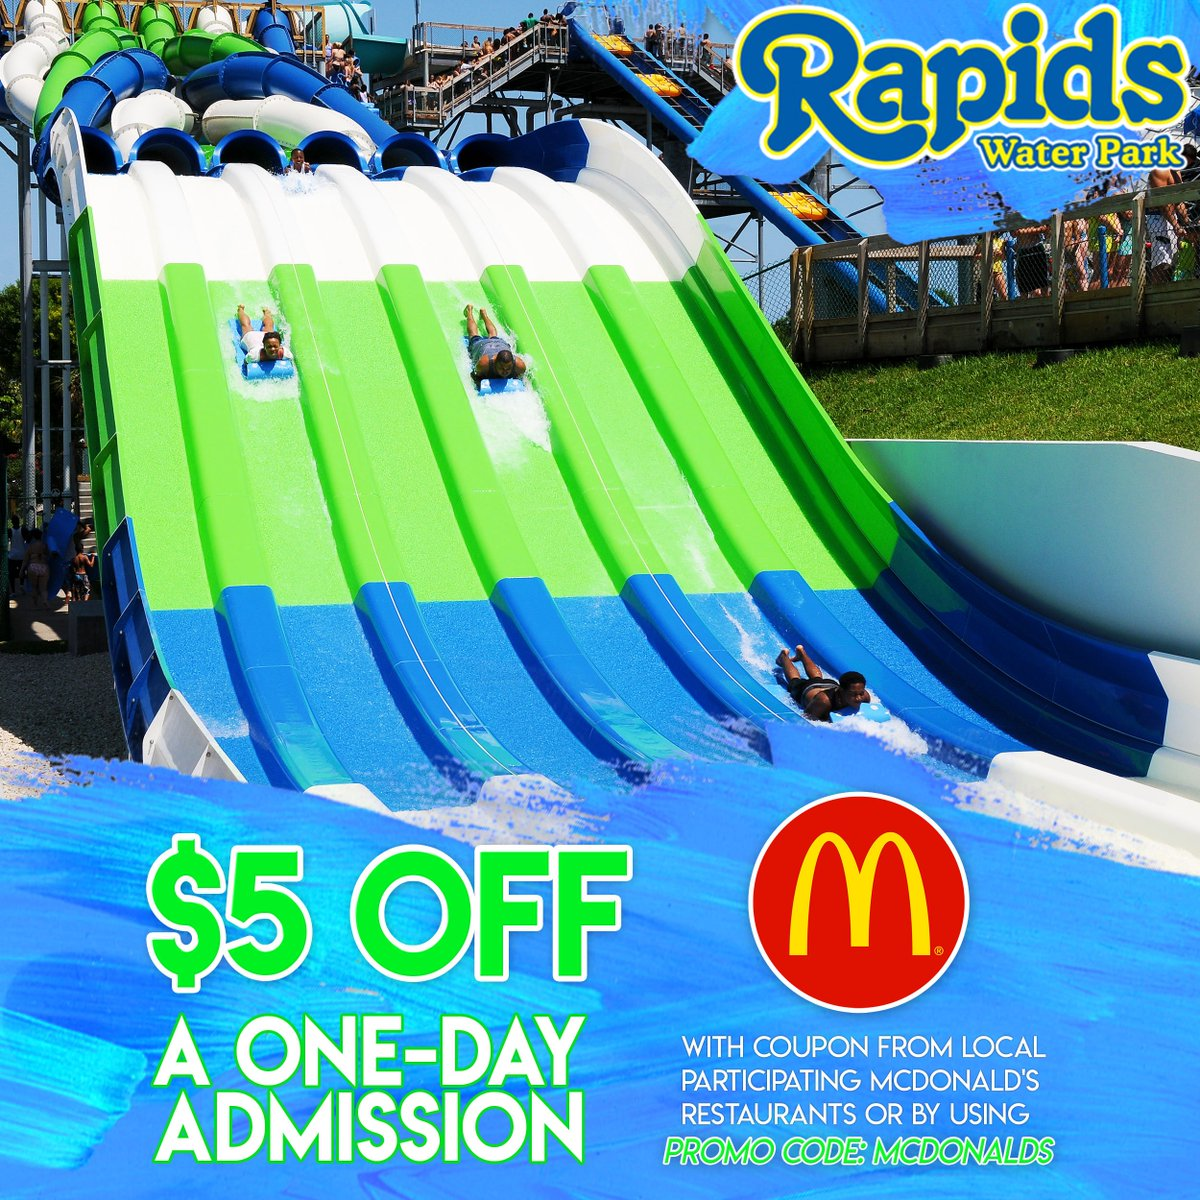 Rapids Water Park On Twitter Hurry 5 Off One Day Admission Savings Ends This Saay June 30th Pick Up Coupon At Mcdonald S Or Go To Our Website And